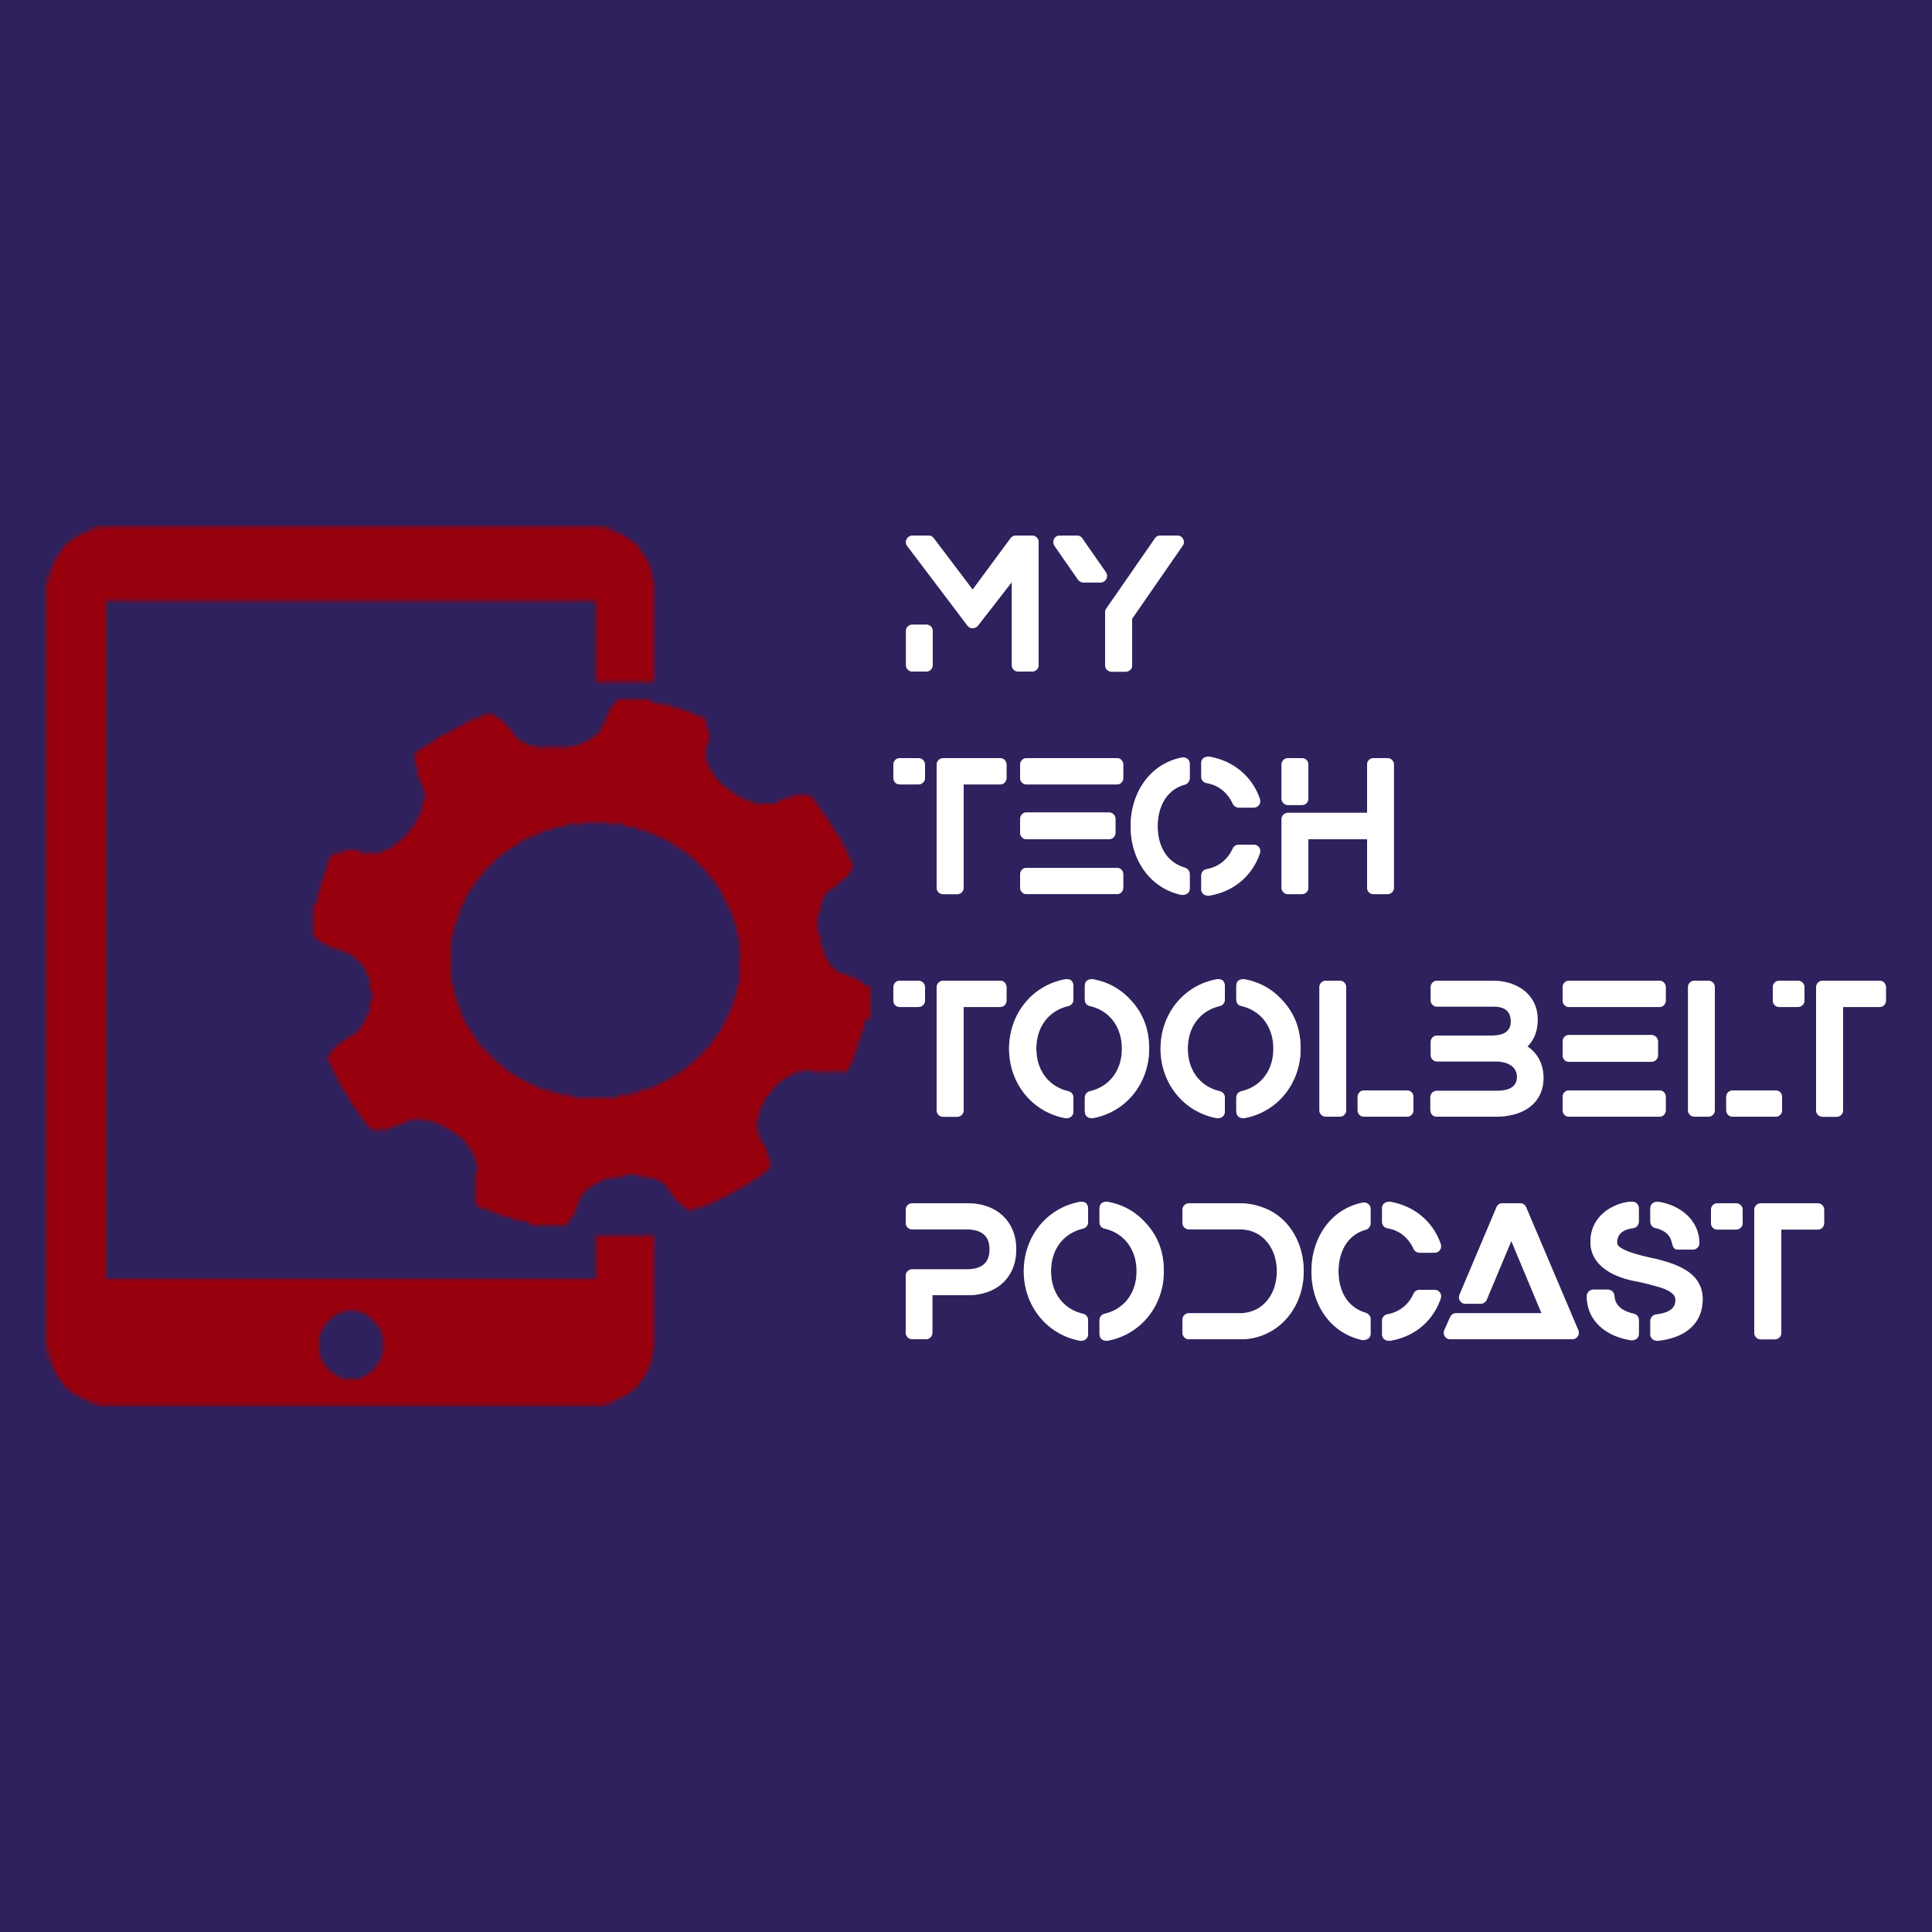 Artwork for The My Tech Toolbelt Podcast Introduction - The Beginning : An Ed Tech podcast